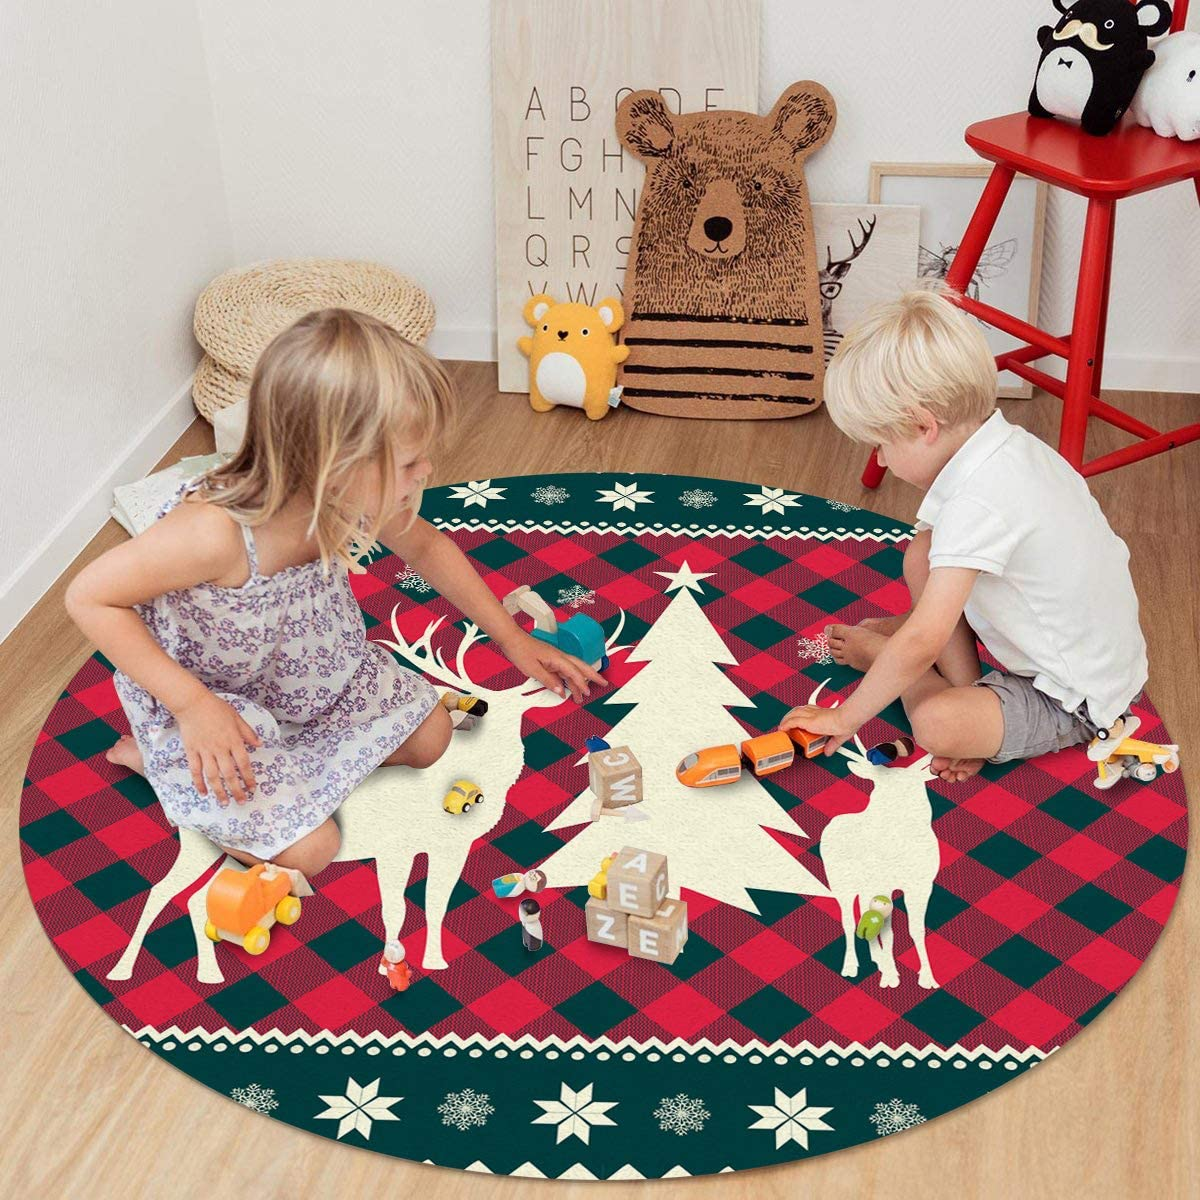 LIFEMUSION New popularity Area Round Rug for Christmas El Modern Indoor Limited time cheap sale Outdoor